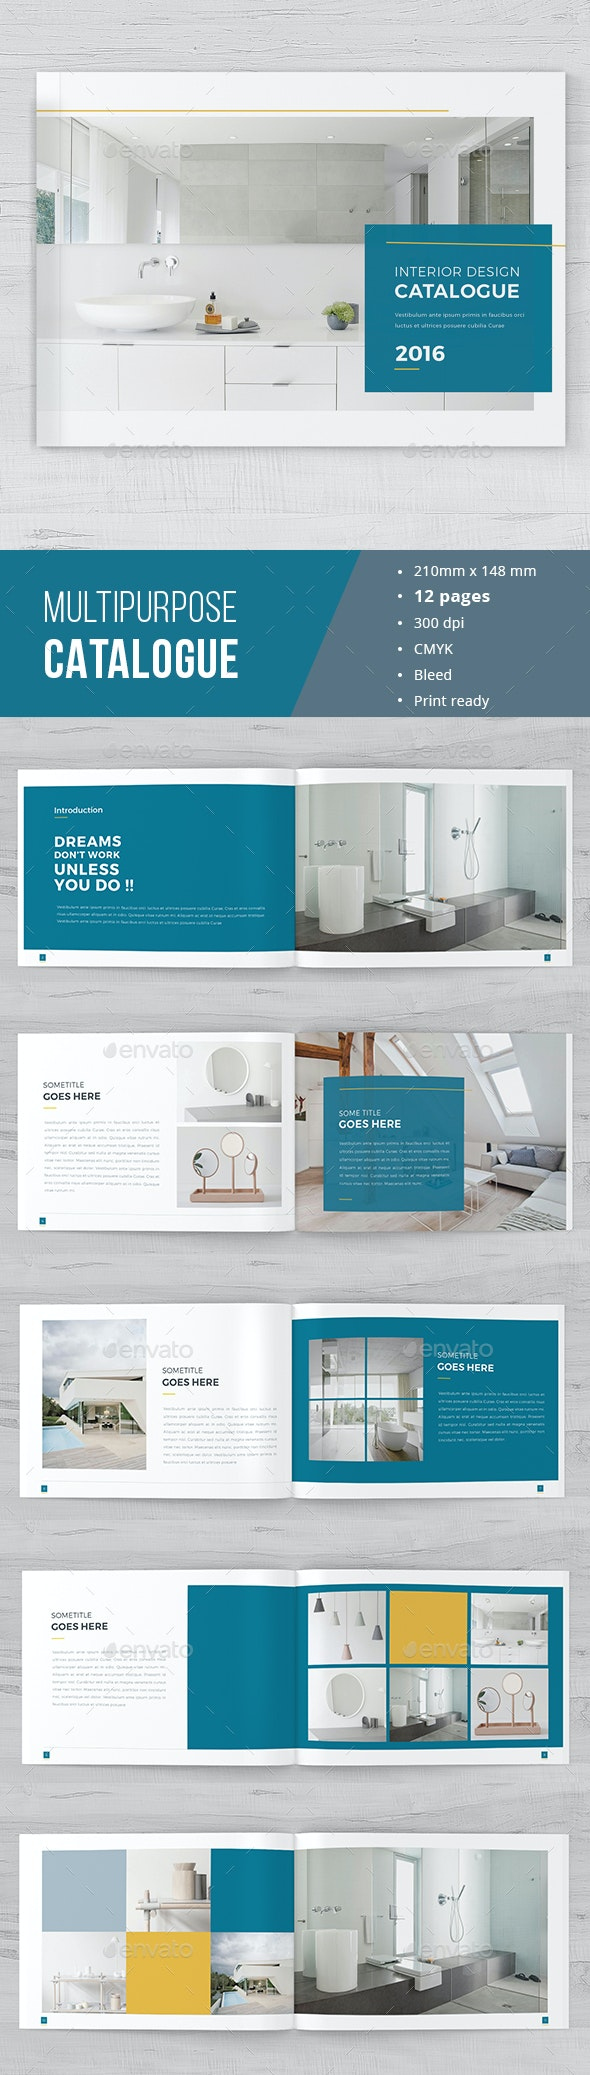 Minimal Catalogue Brochure - Catalogs Brochures